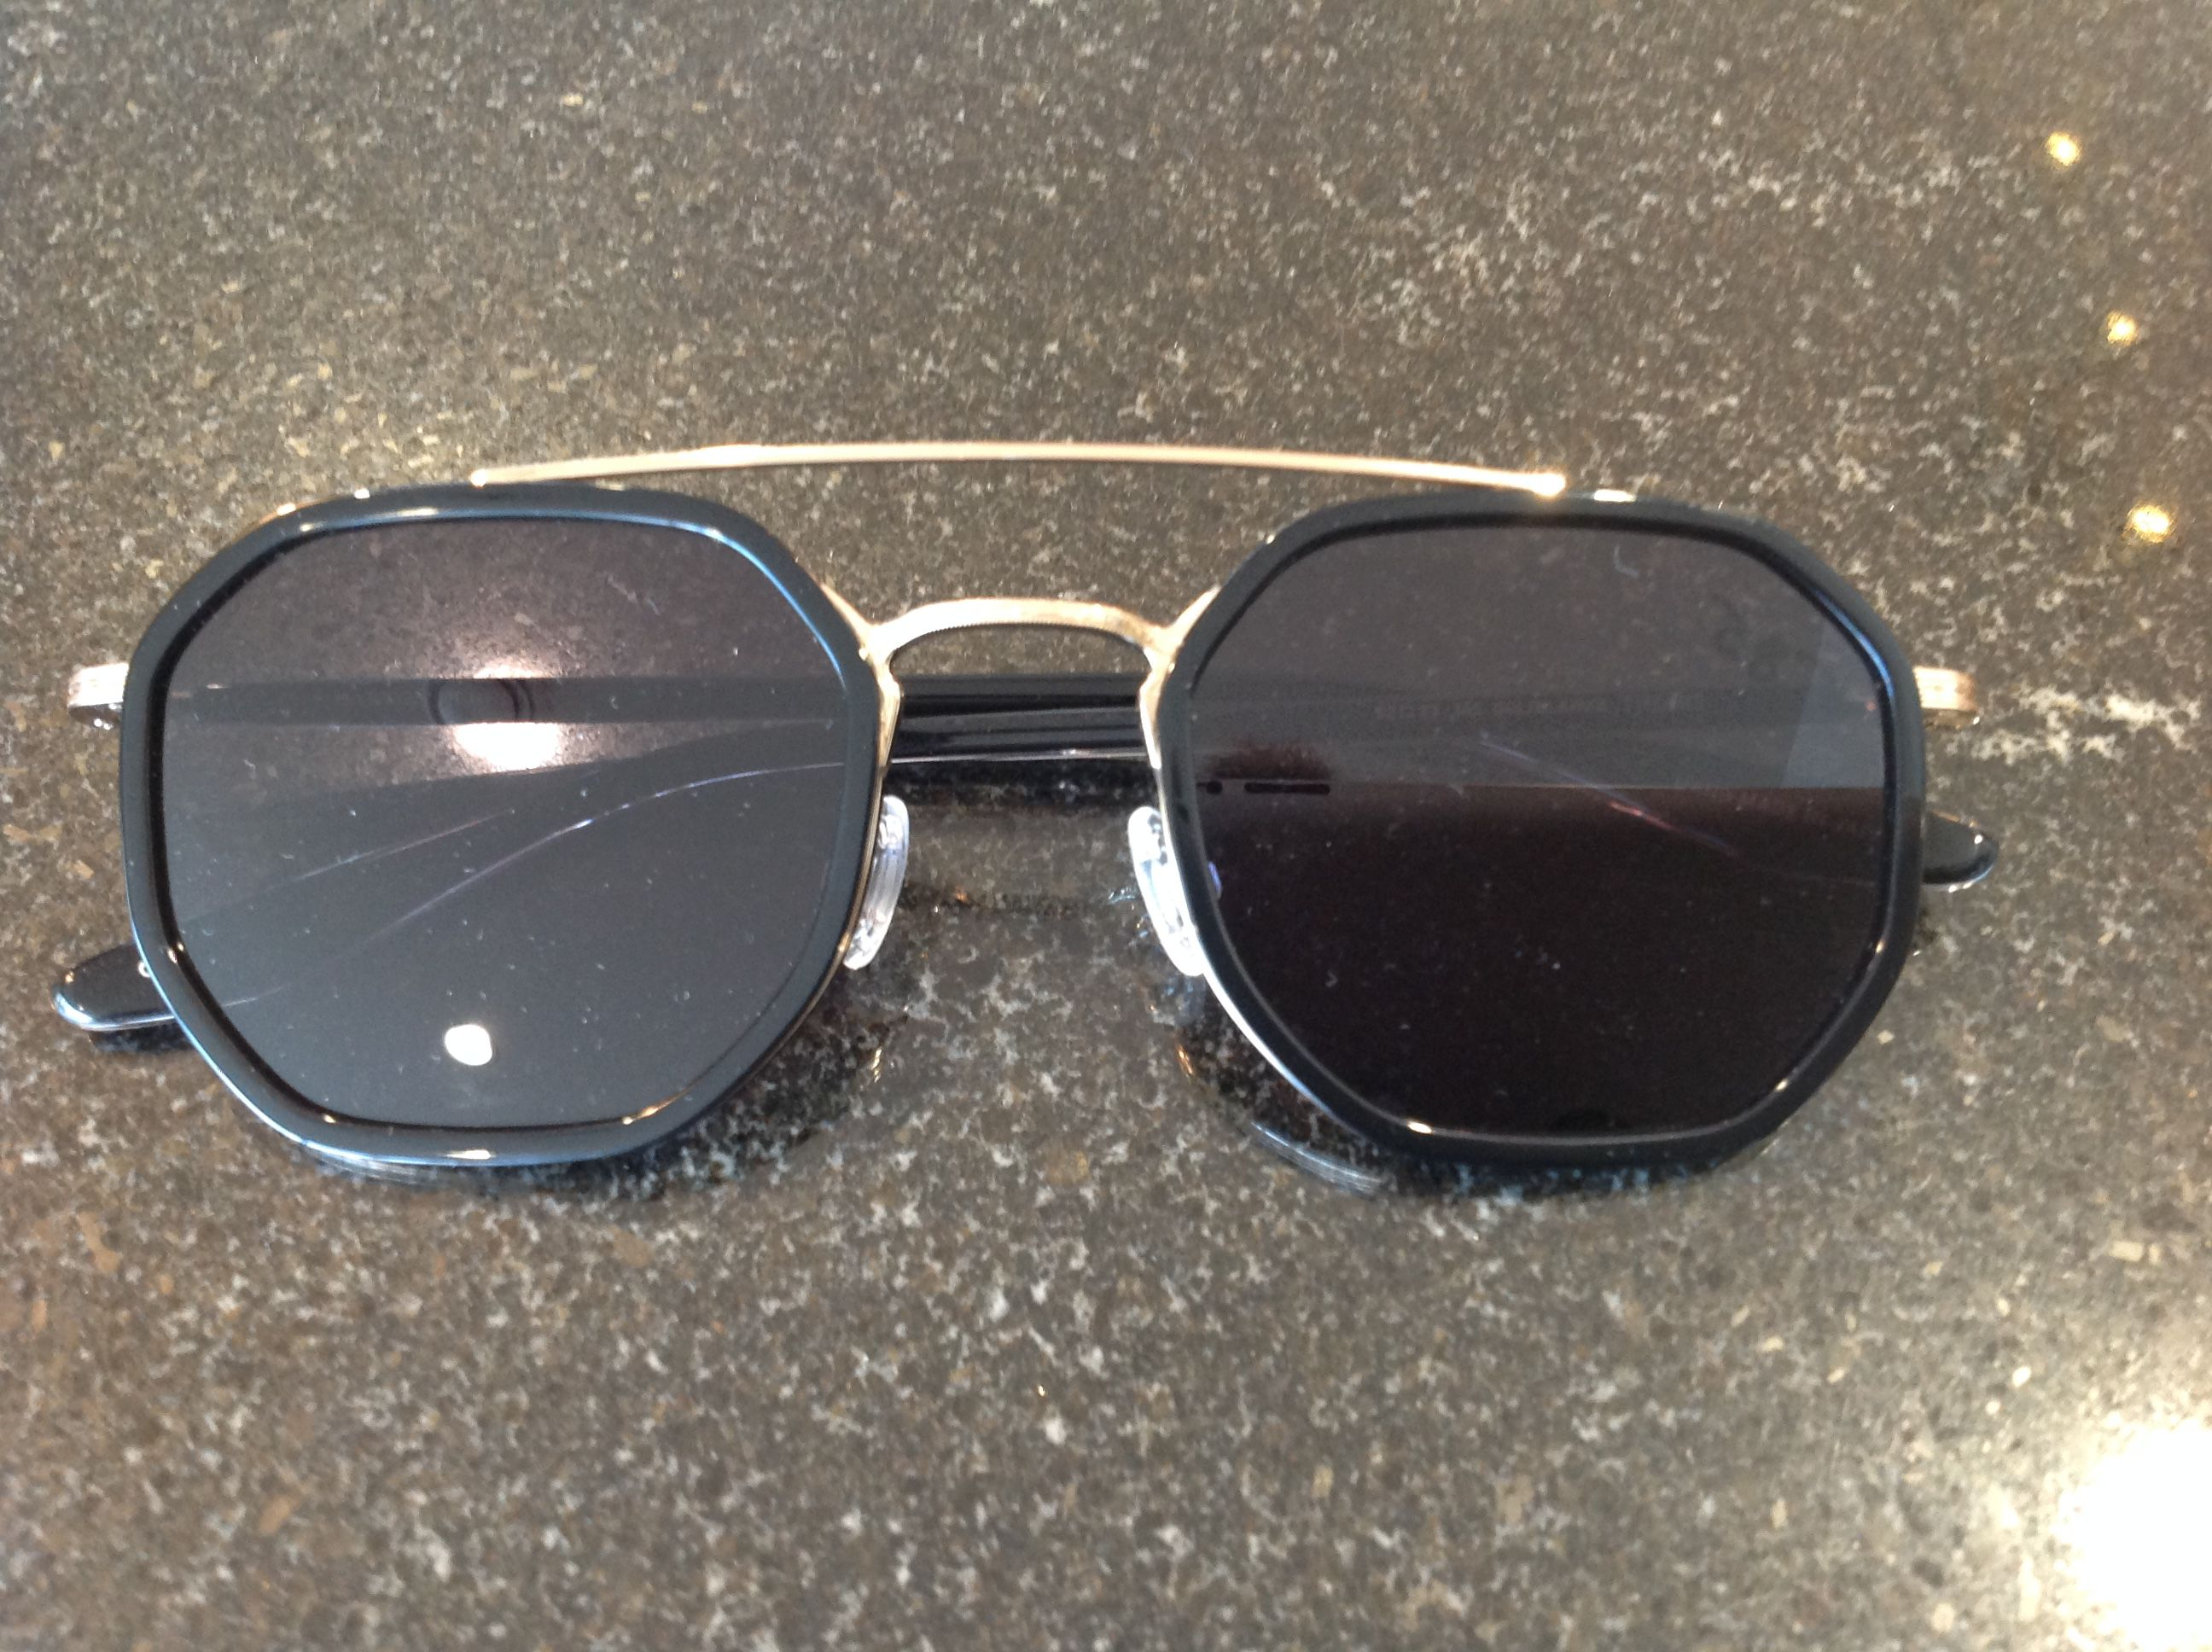 068af8d189e9 Luxury Sunglasses - Bullock s the Eye Opener